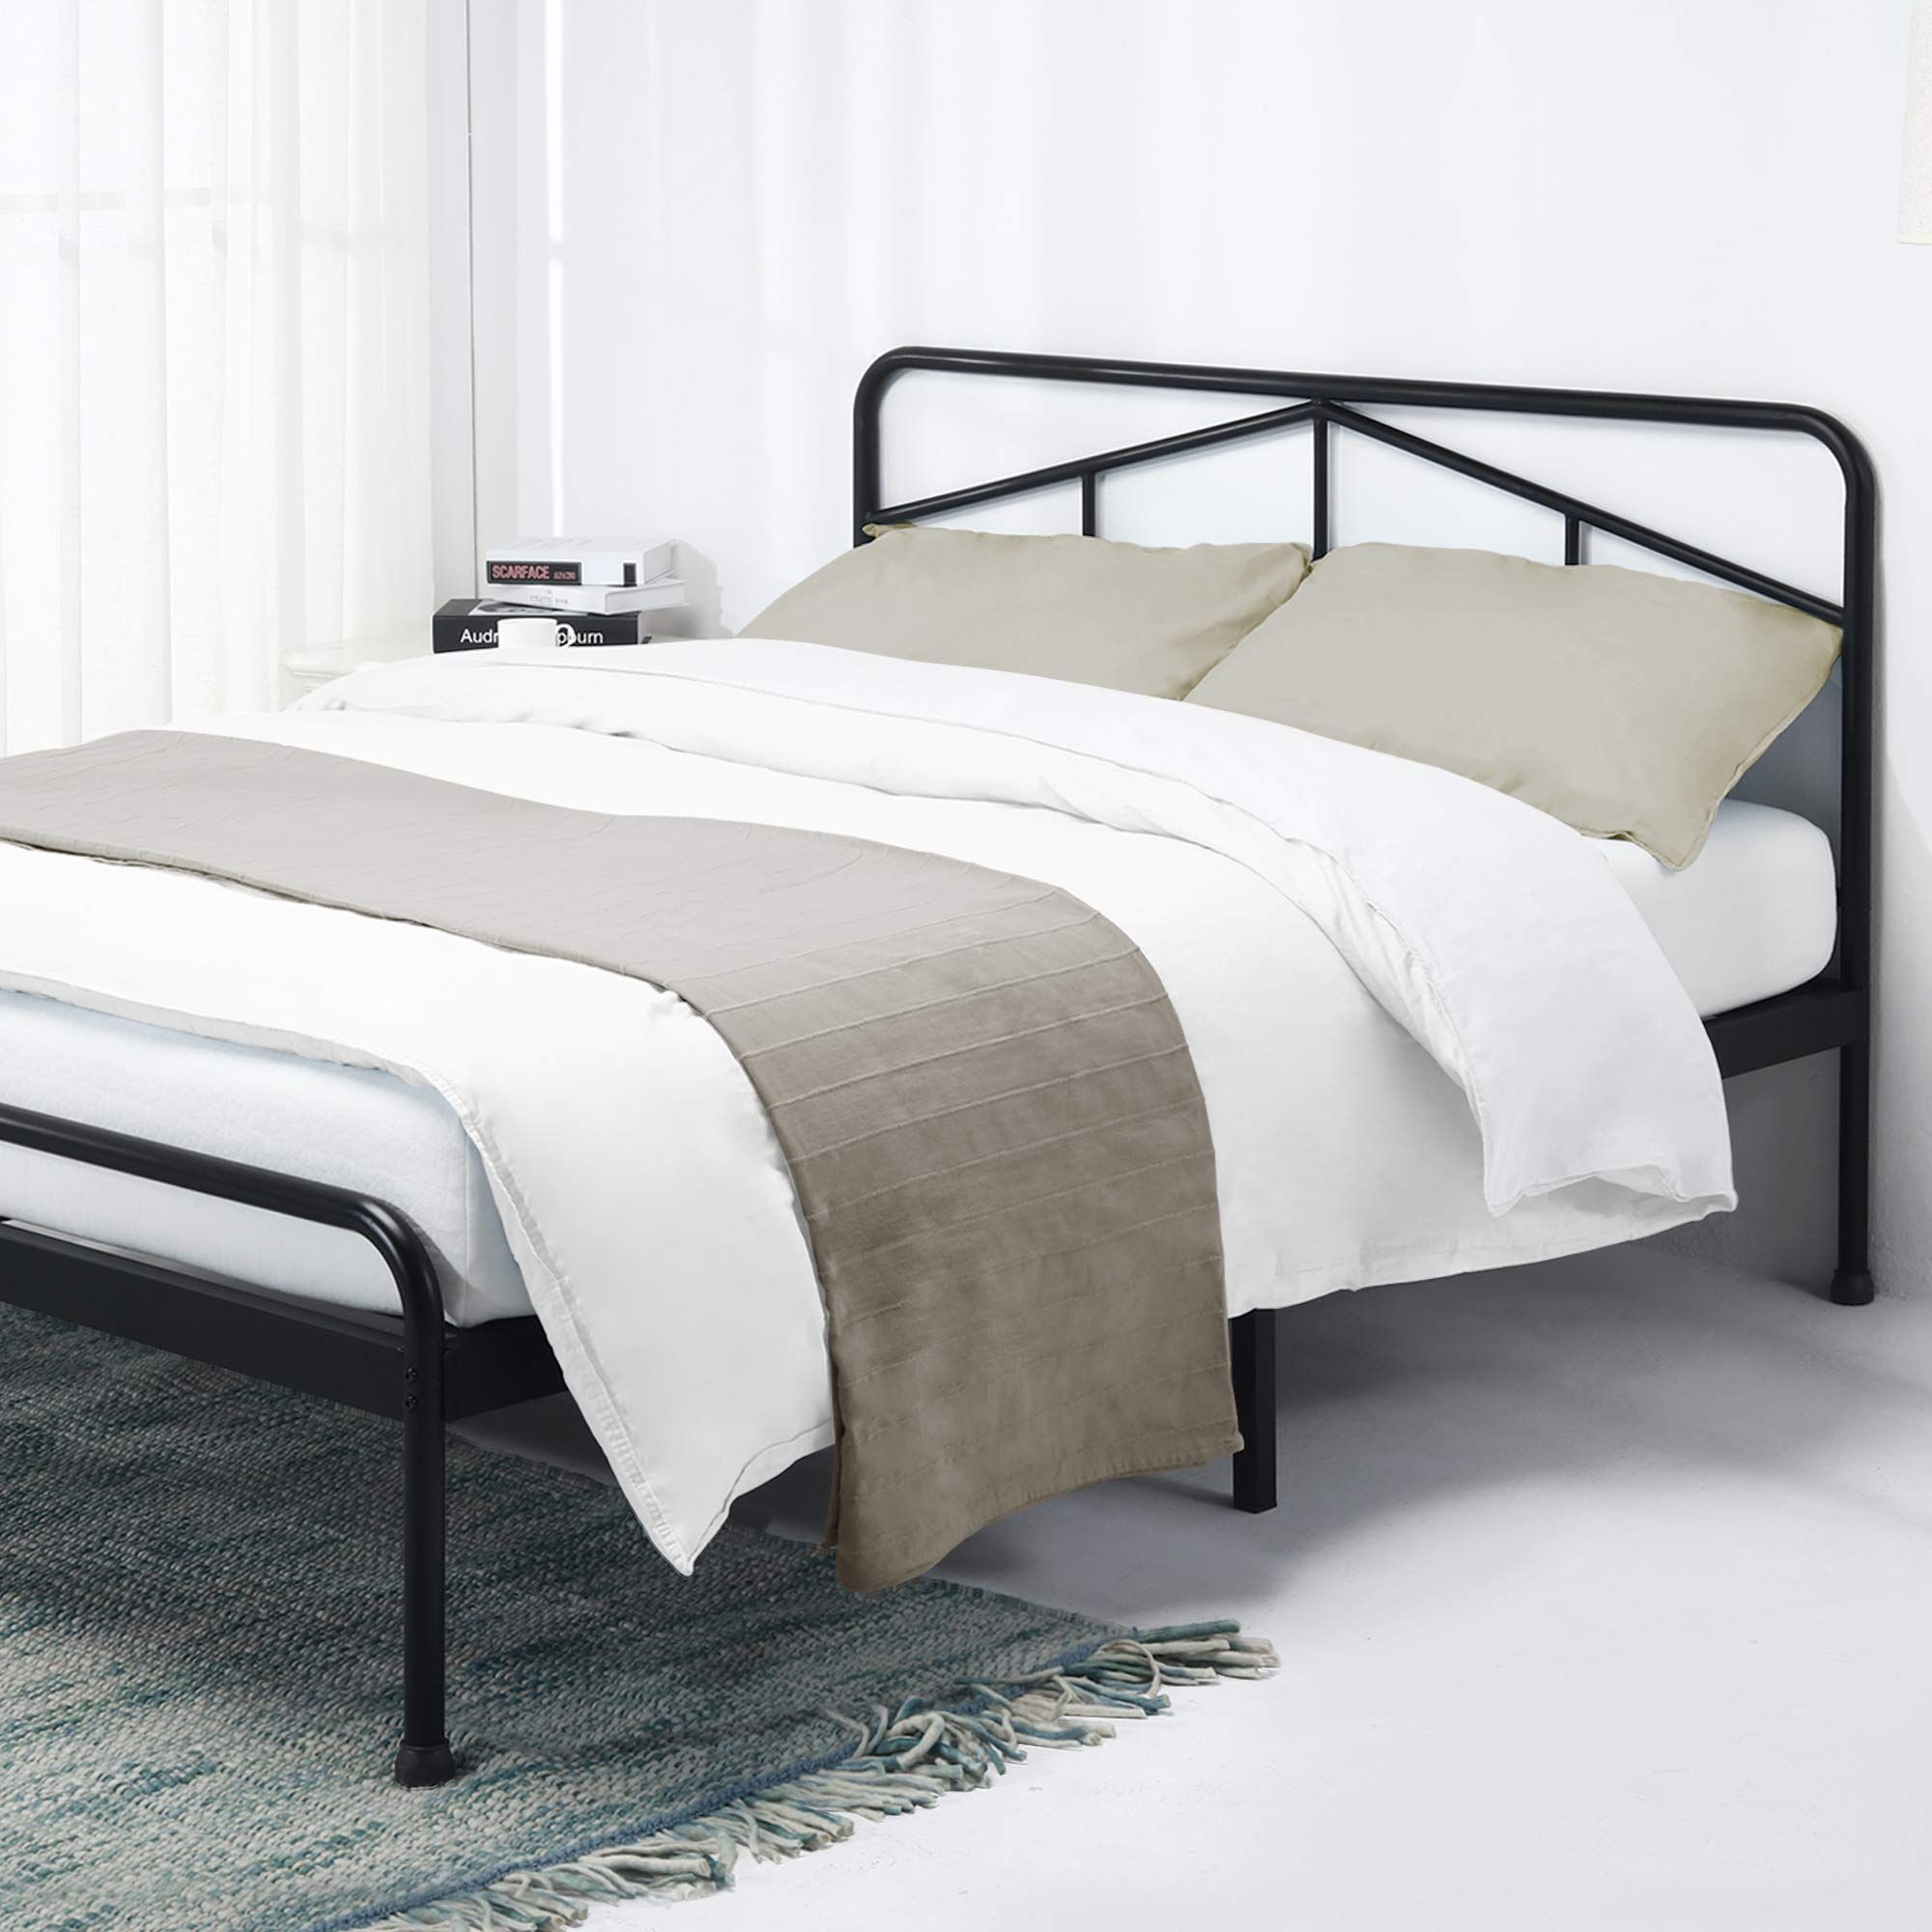 Black bedding upholstered in 2020 Metal platform bed